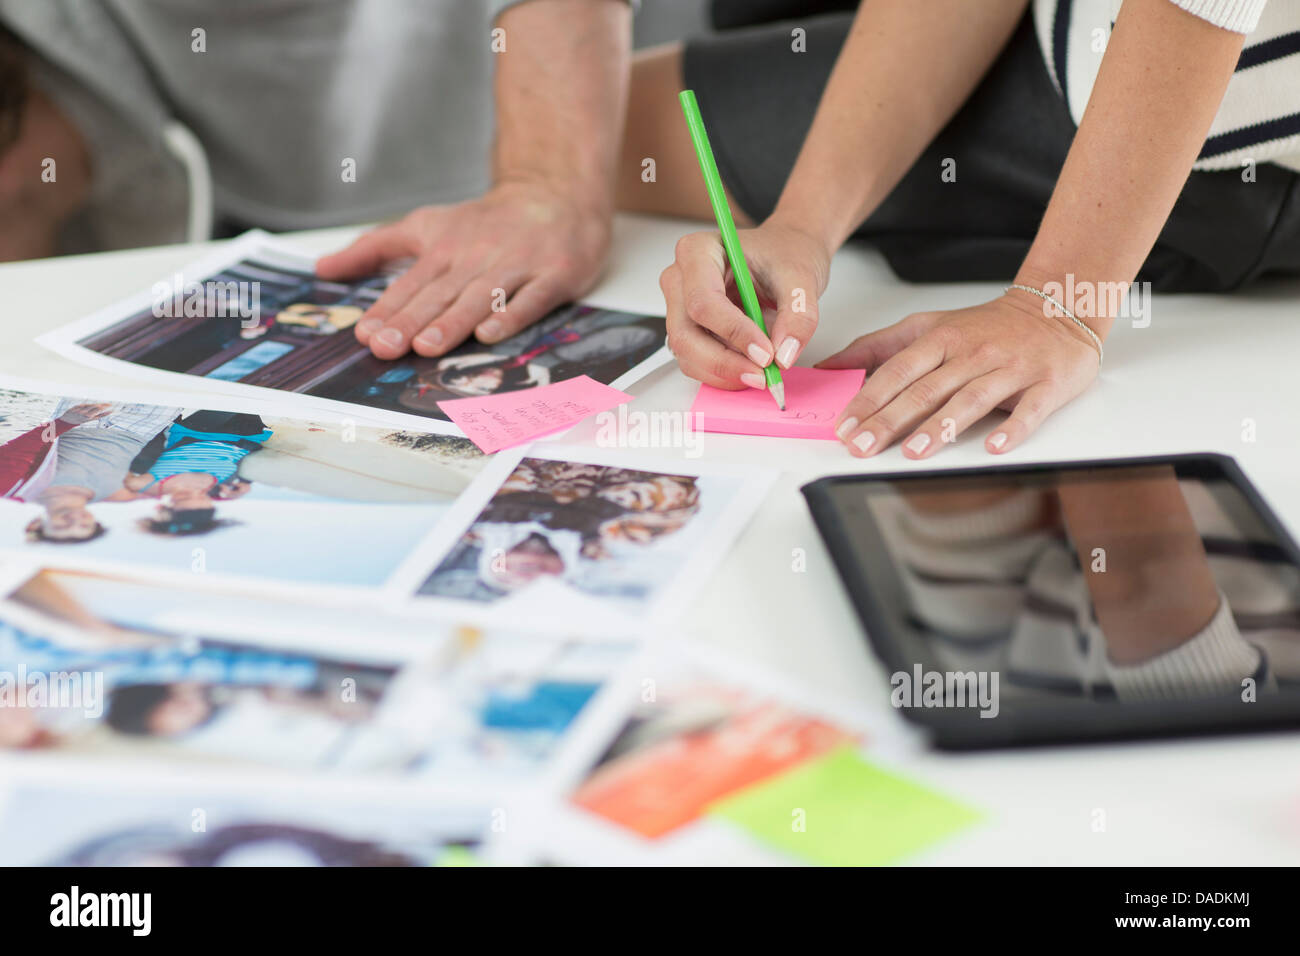 Colleagues making notes on desk of photographs and digital tablet in creative office - Stock Image